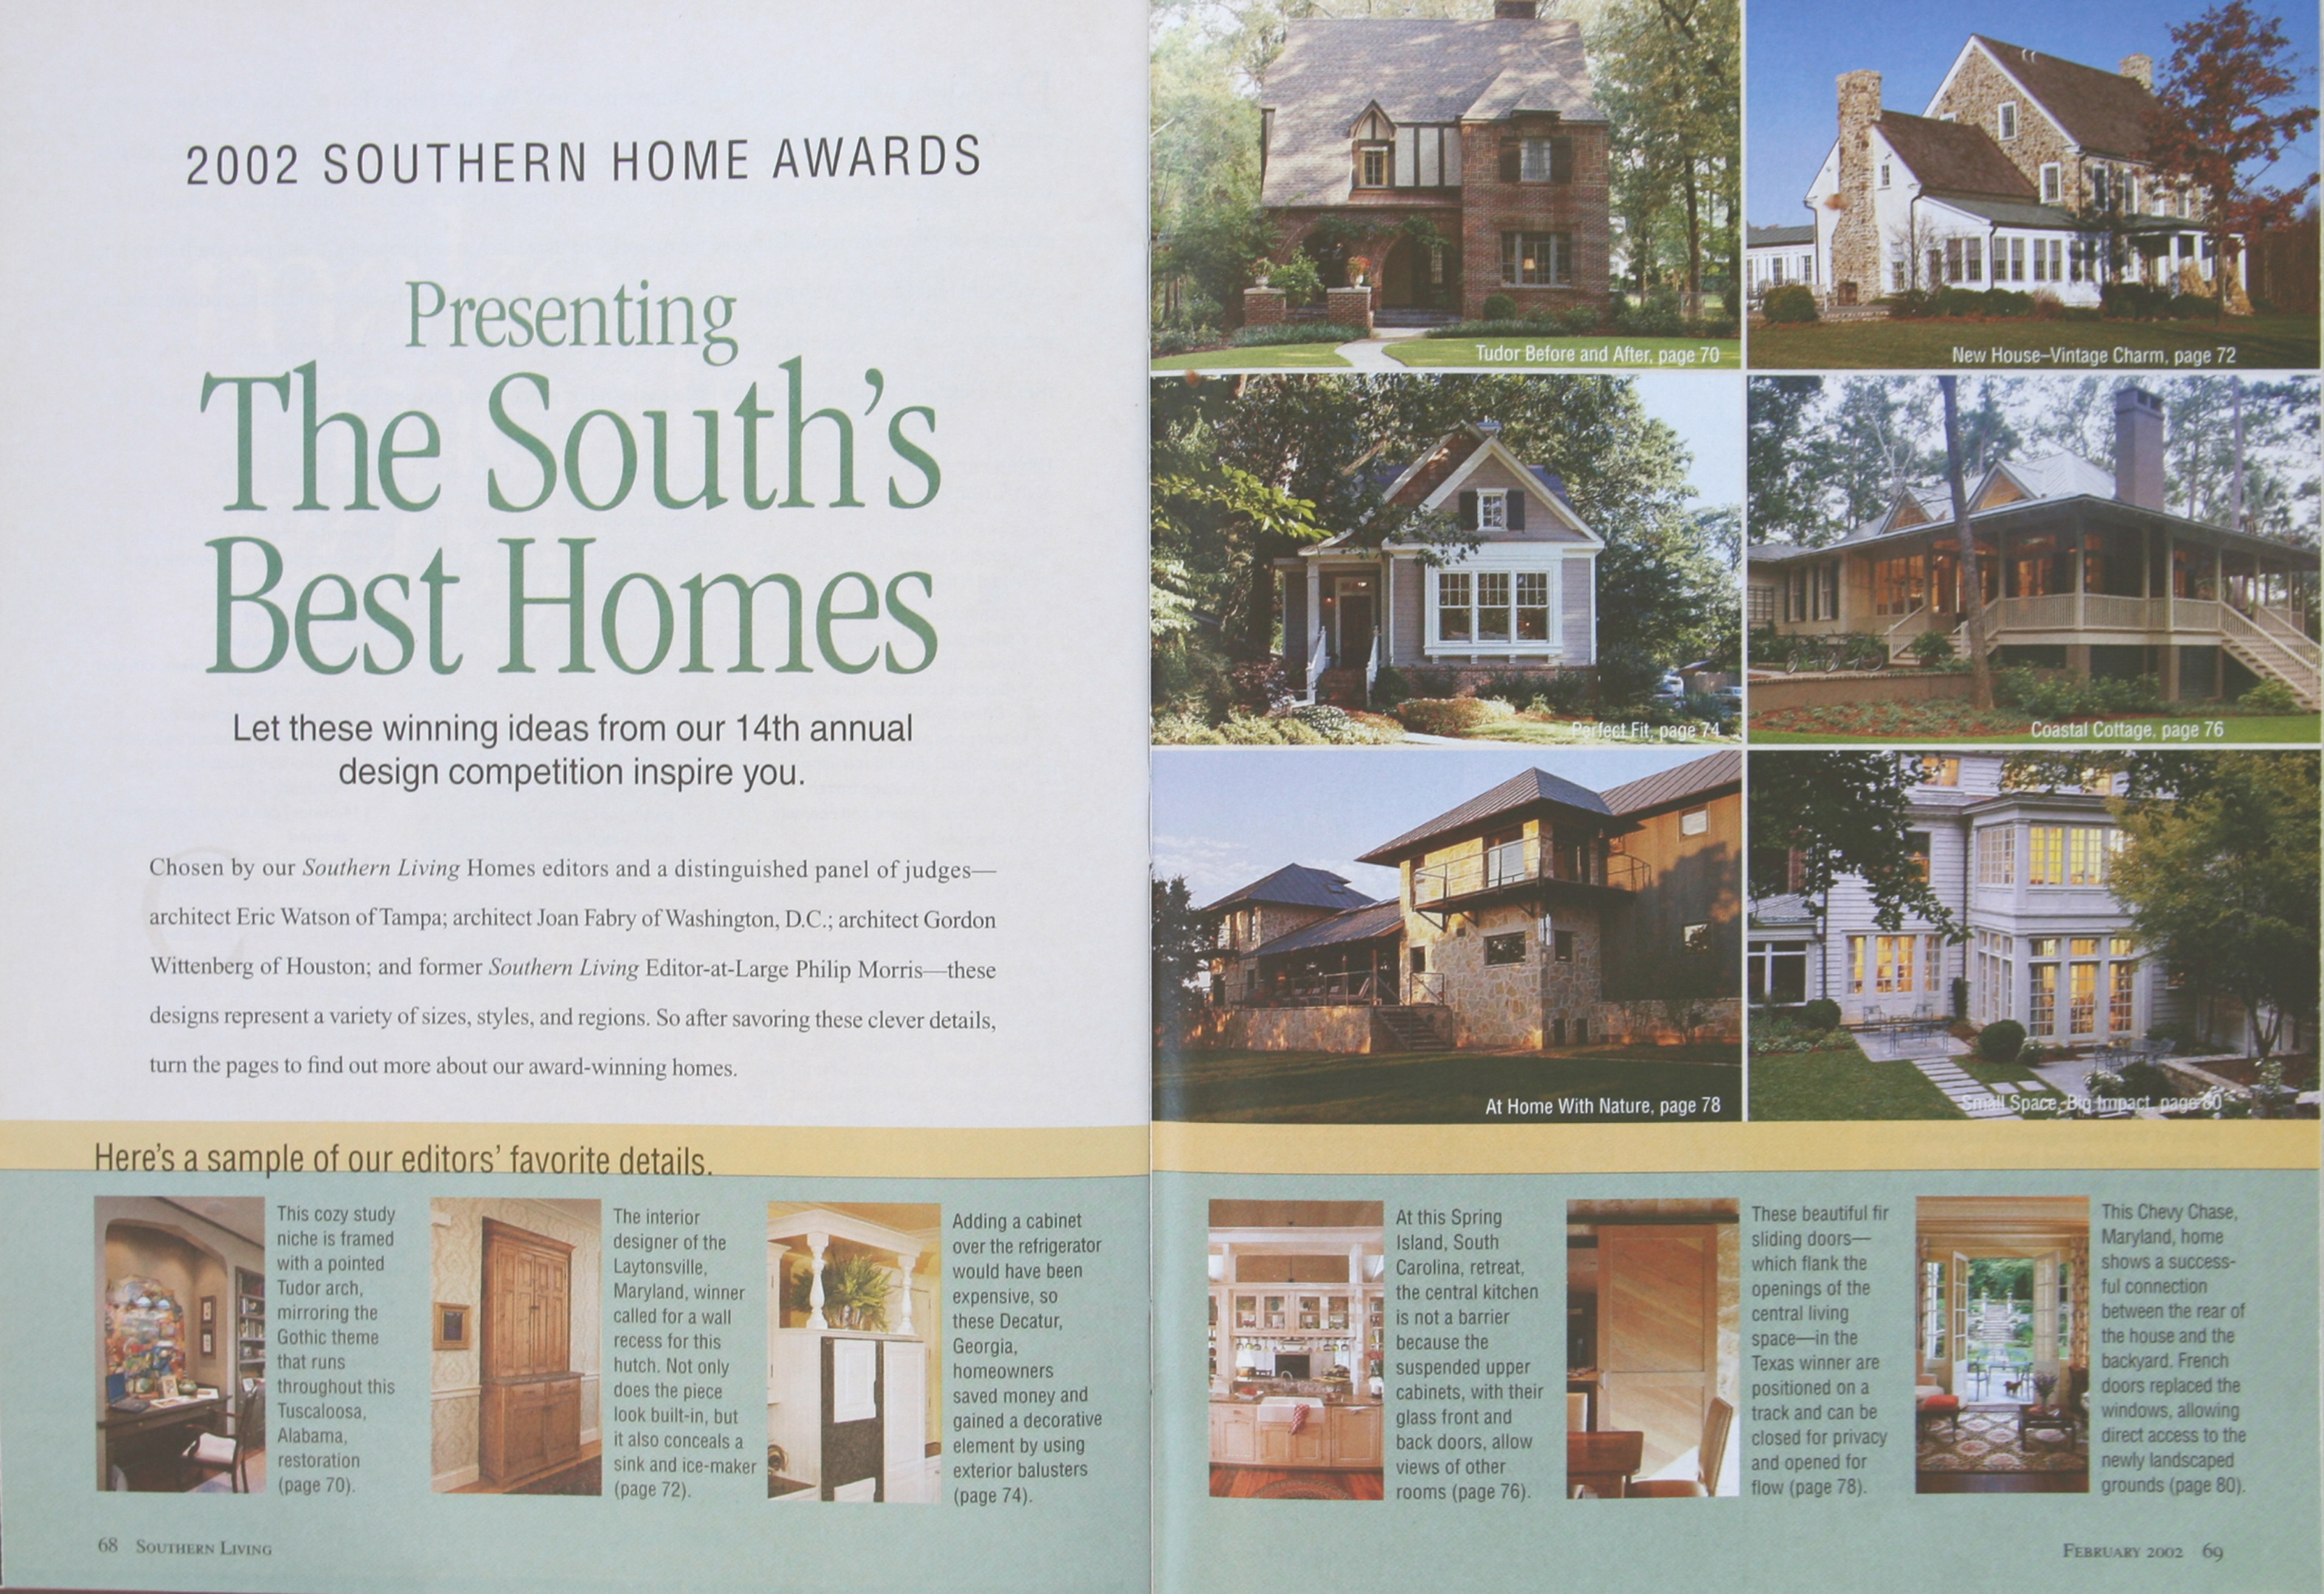 Southern Home Awards - The South's Best Homes - Feb 2002-p78